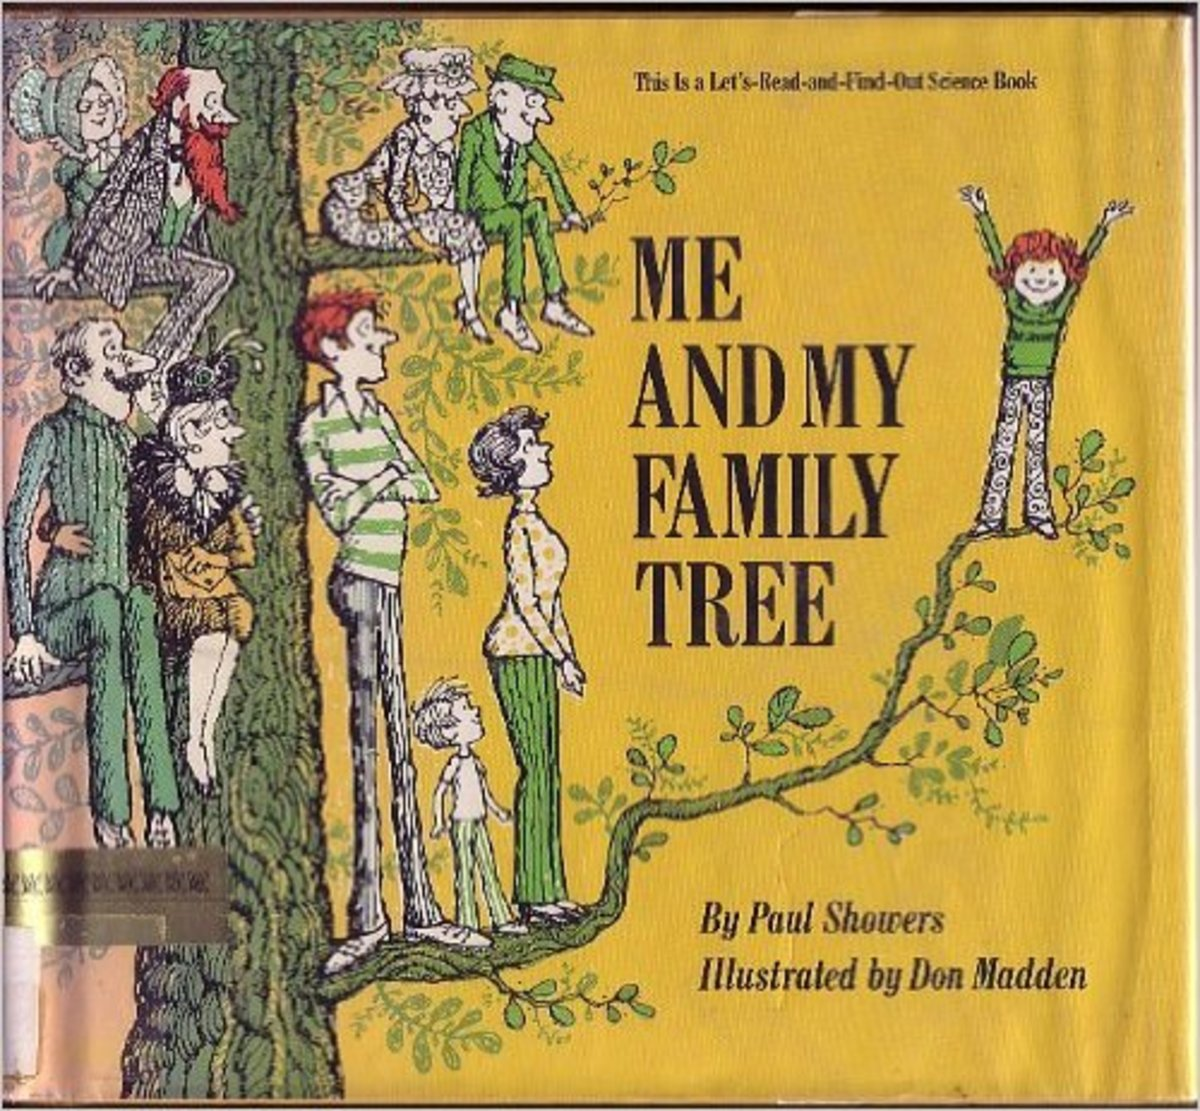 My Family Tree by Paul Showers